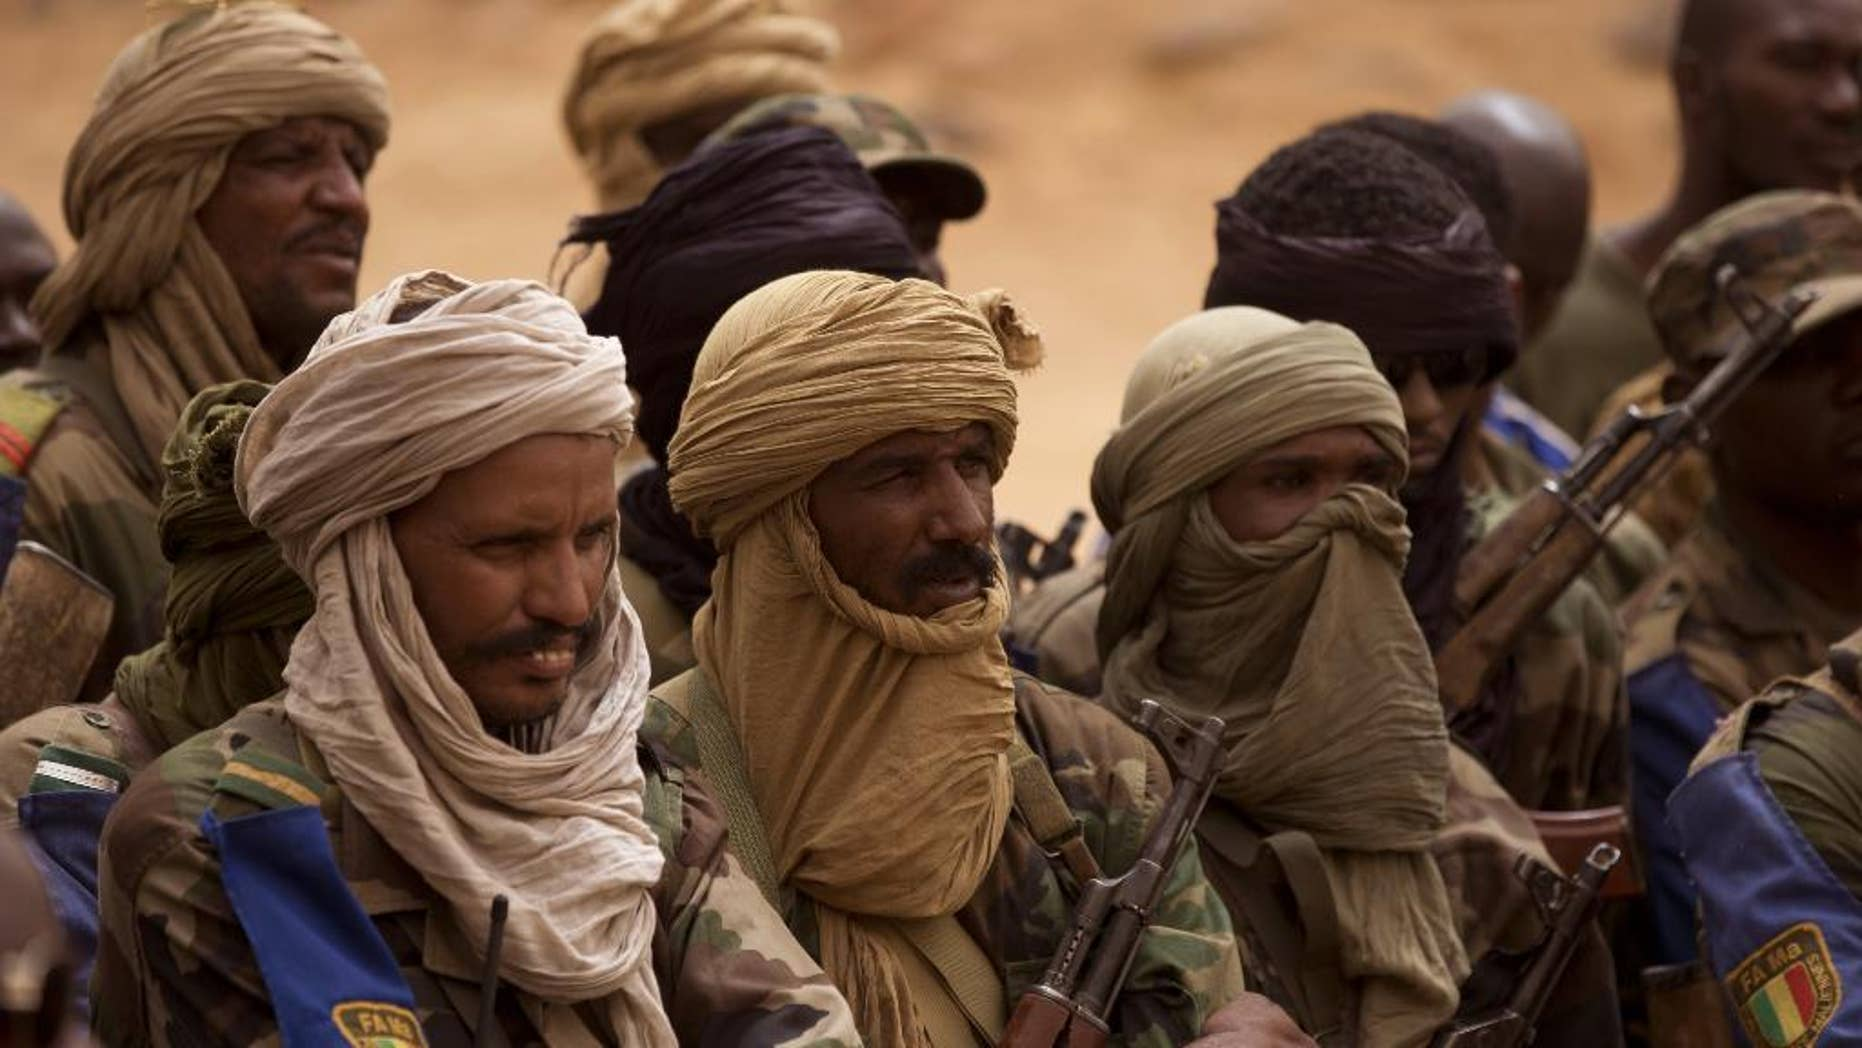 FILE - In this July 27, 2013 file photo, Malian Tuareg soldiers loyal to Col. Major El-Hadj Gamou listen during a visit by Mali's army chief of staff in Kidal, Mali. Tuareg separatist rebels agreed to sign a peace deal with the government in just over a week's time but that hasn't stopped them from attacking towns and encroaching further south toward Mali's capital. The toll has risen to 30 dead in recent days. (AP Photo/Rebecca Blackwell, File)